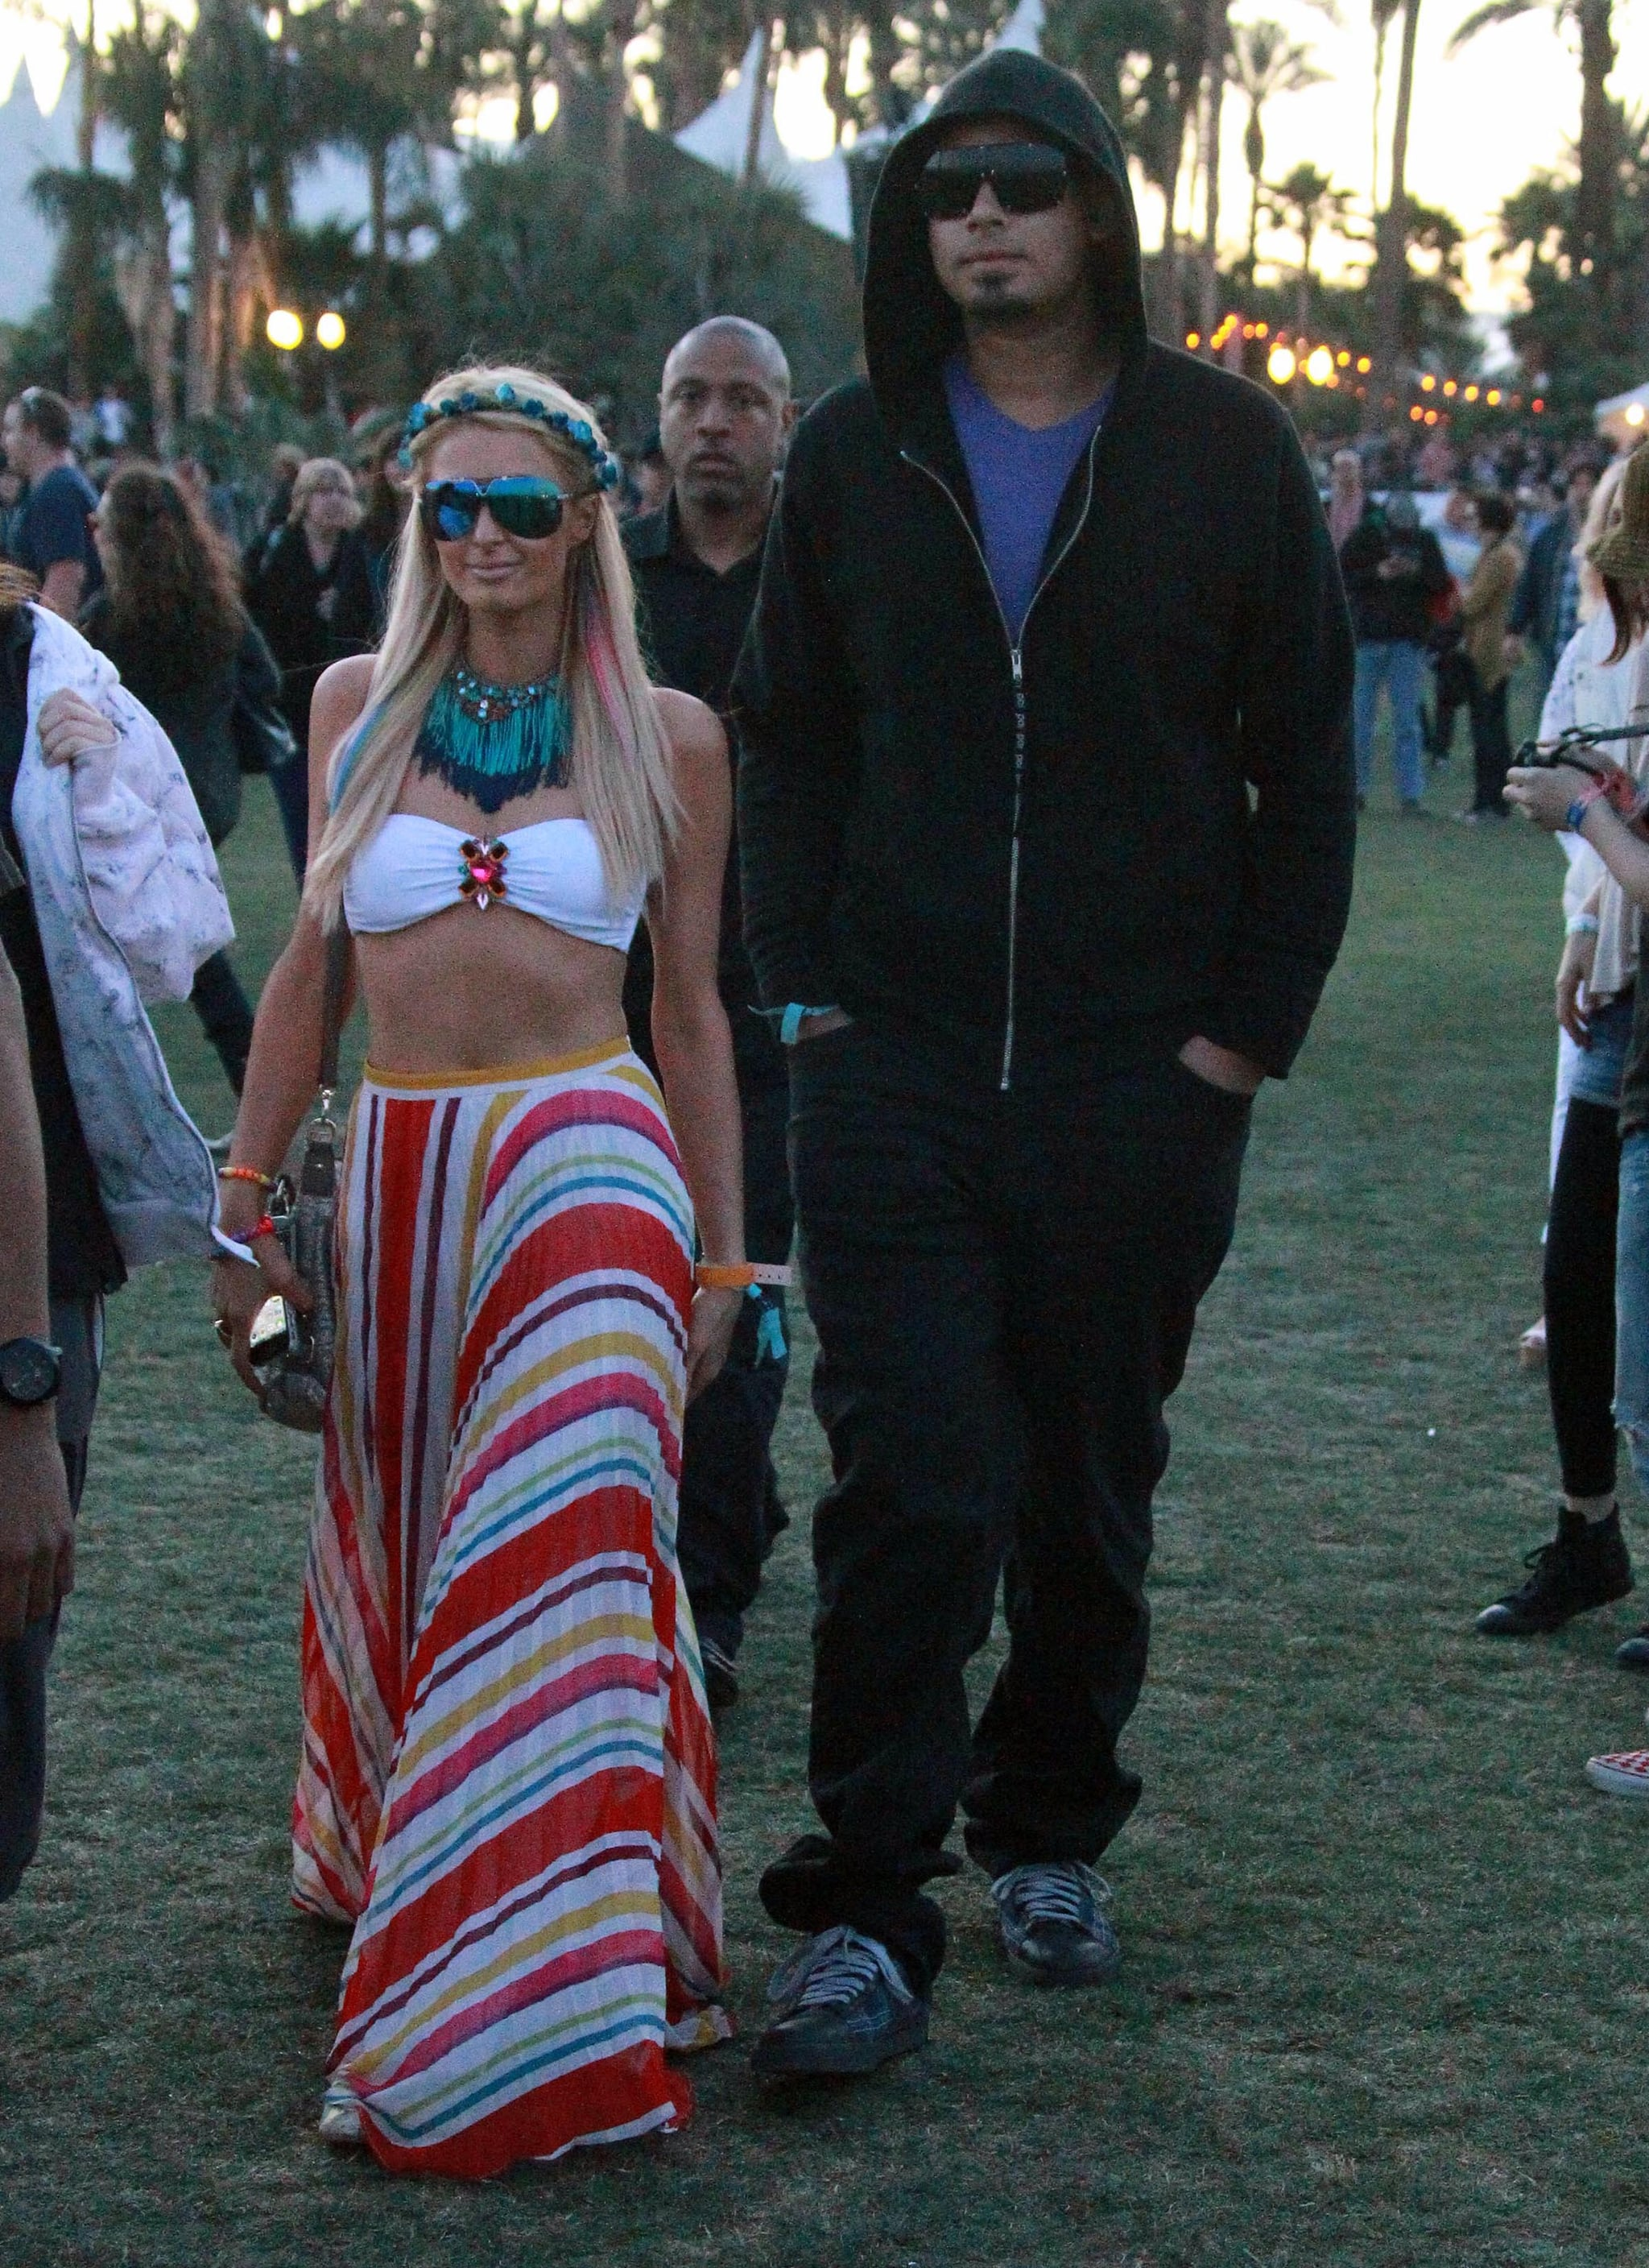 Paris Hilton and her boyfriend, DJ Afrojack, hung out at Coachella on Saturday before partying at Neon Carnival late into the night.